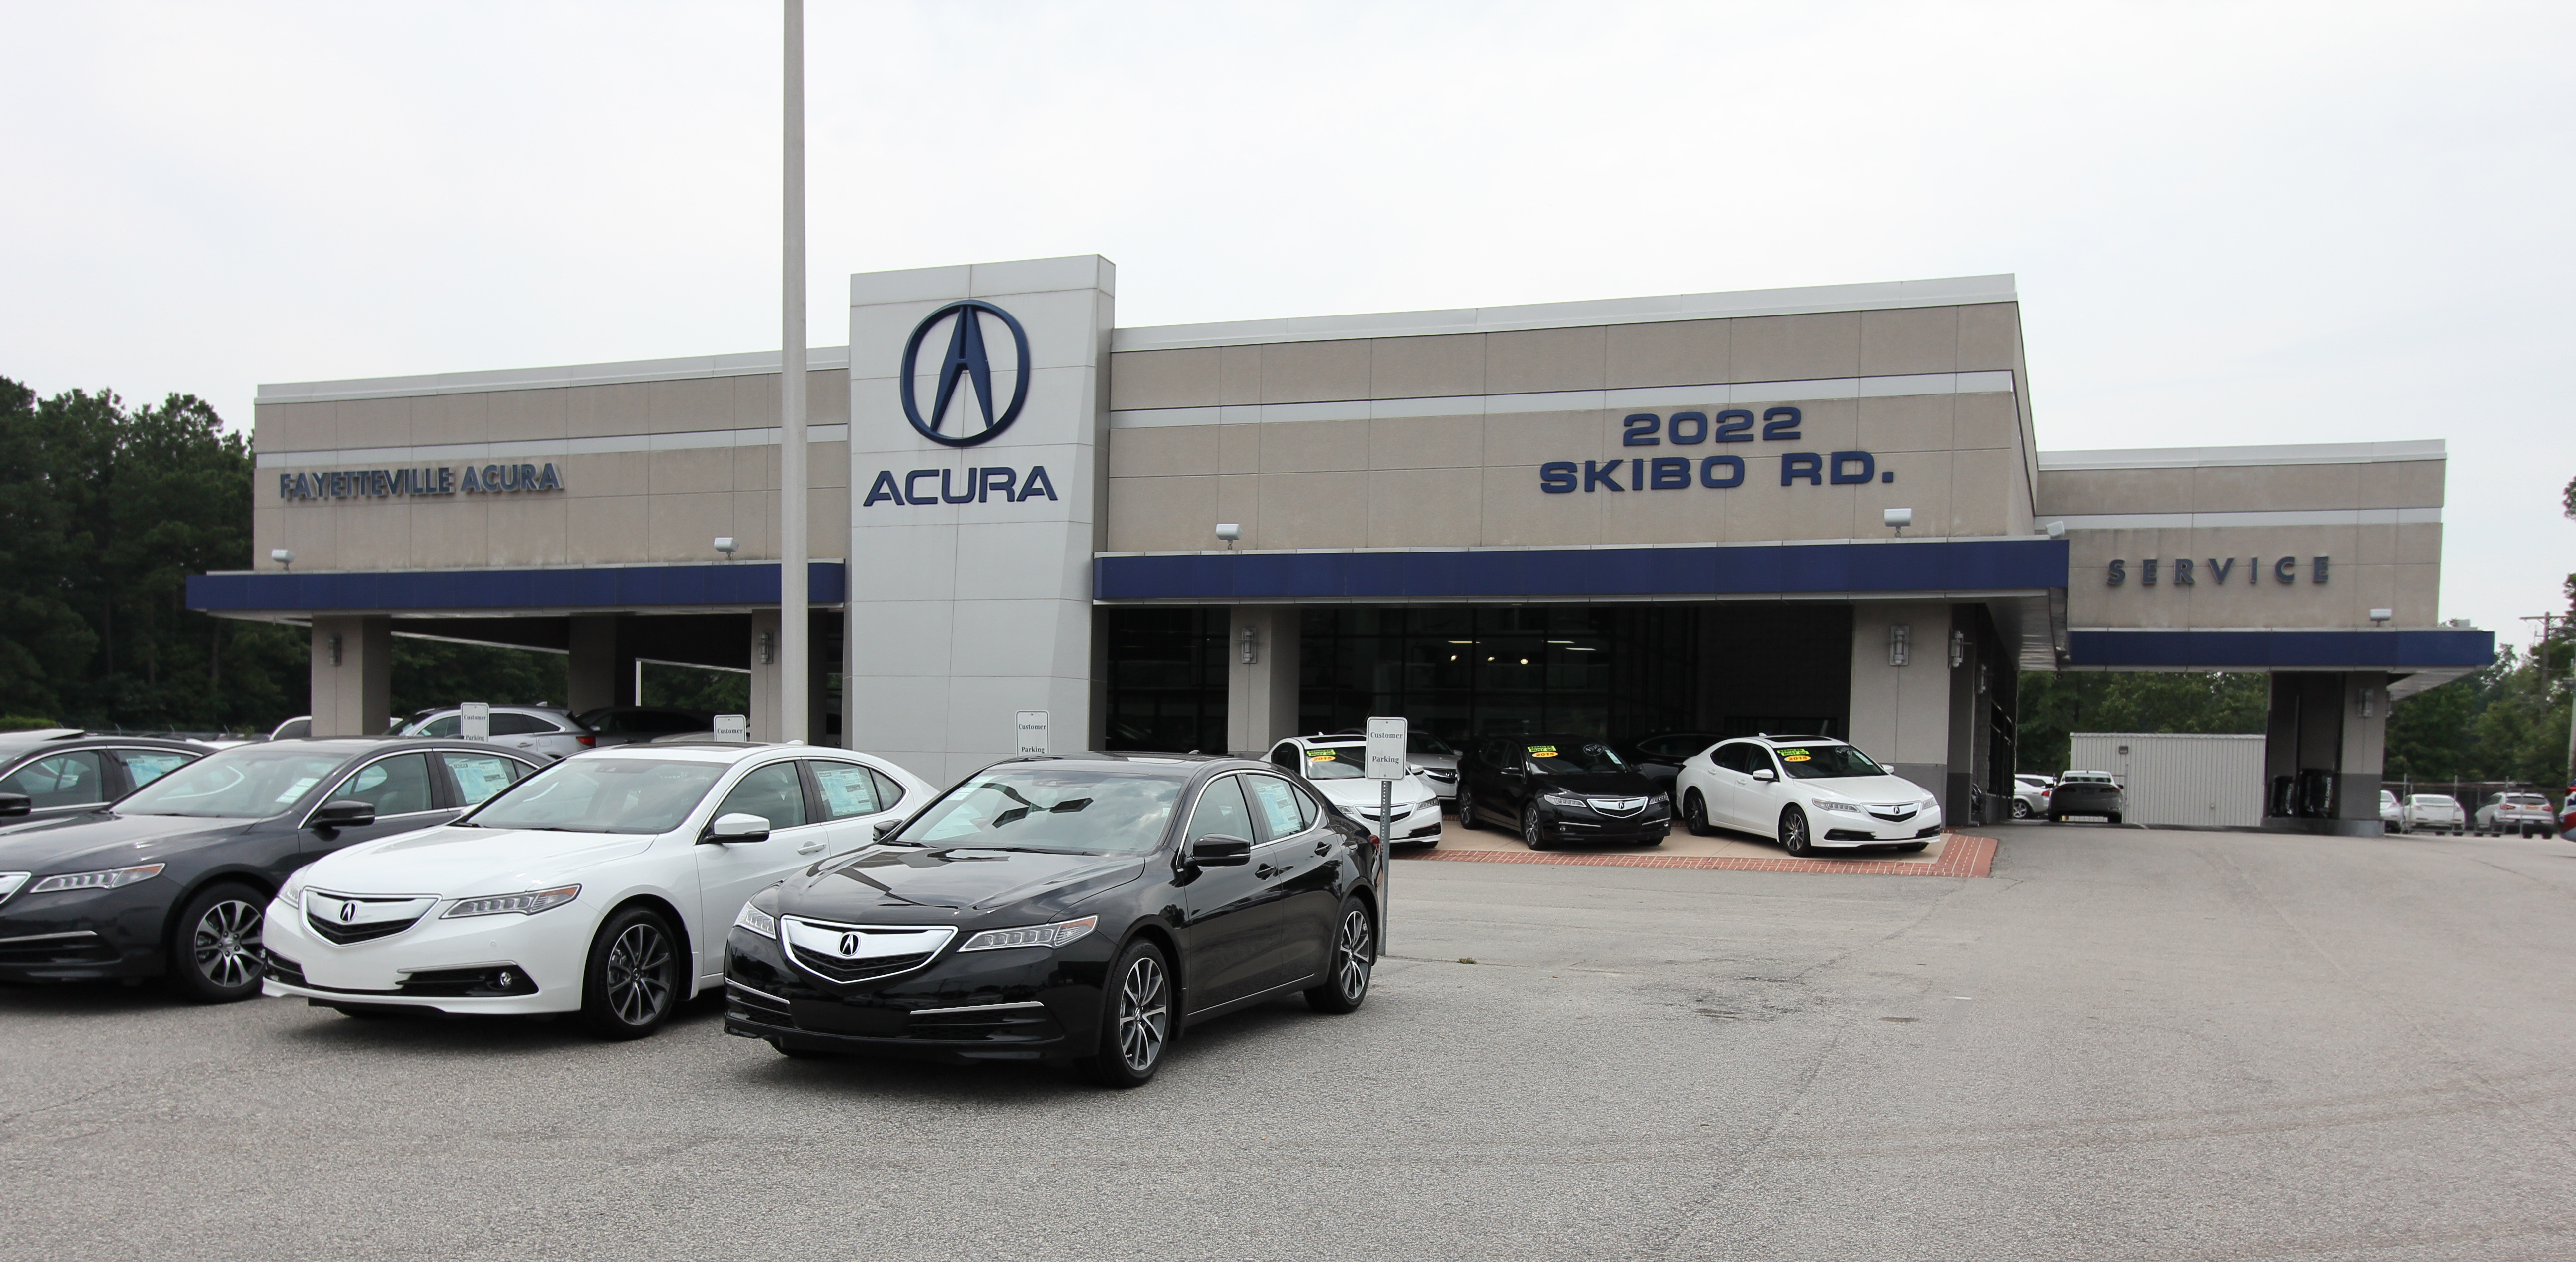 About Fayetteville Acura